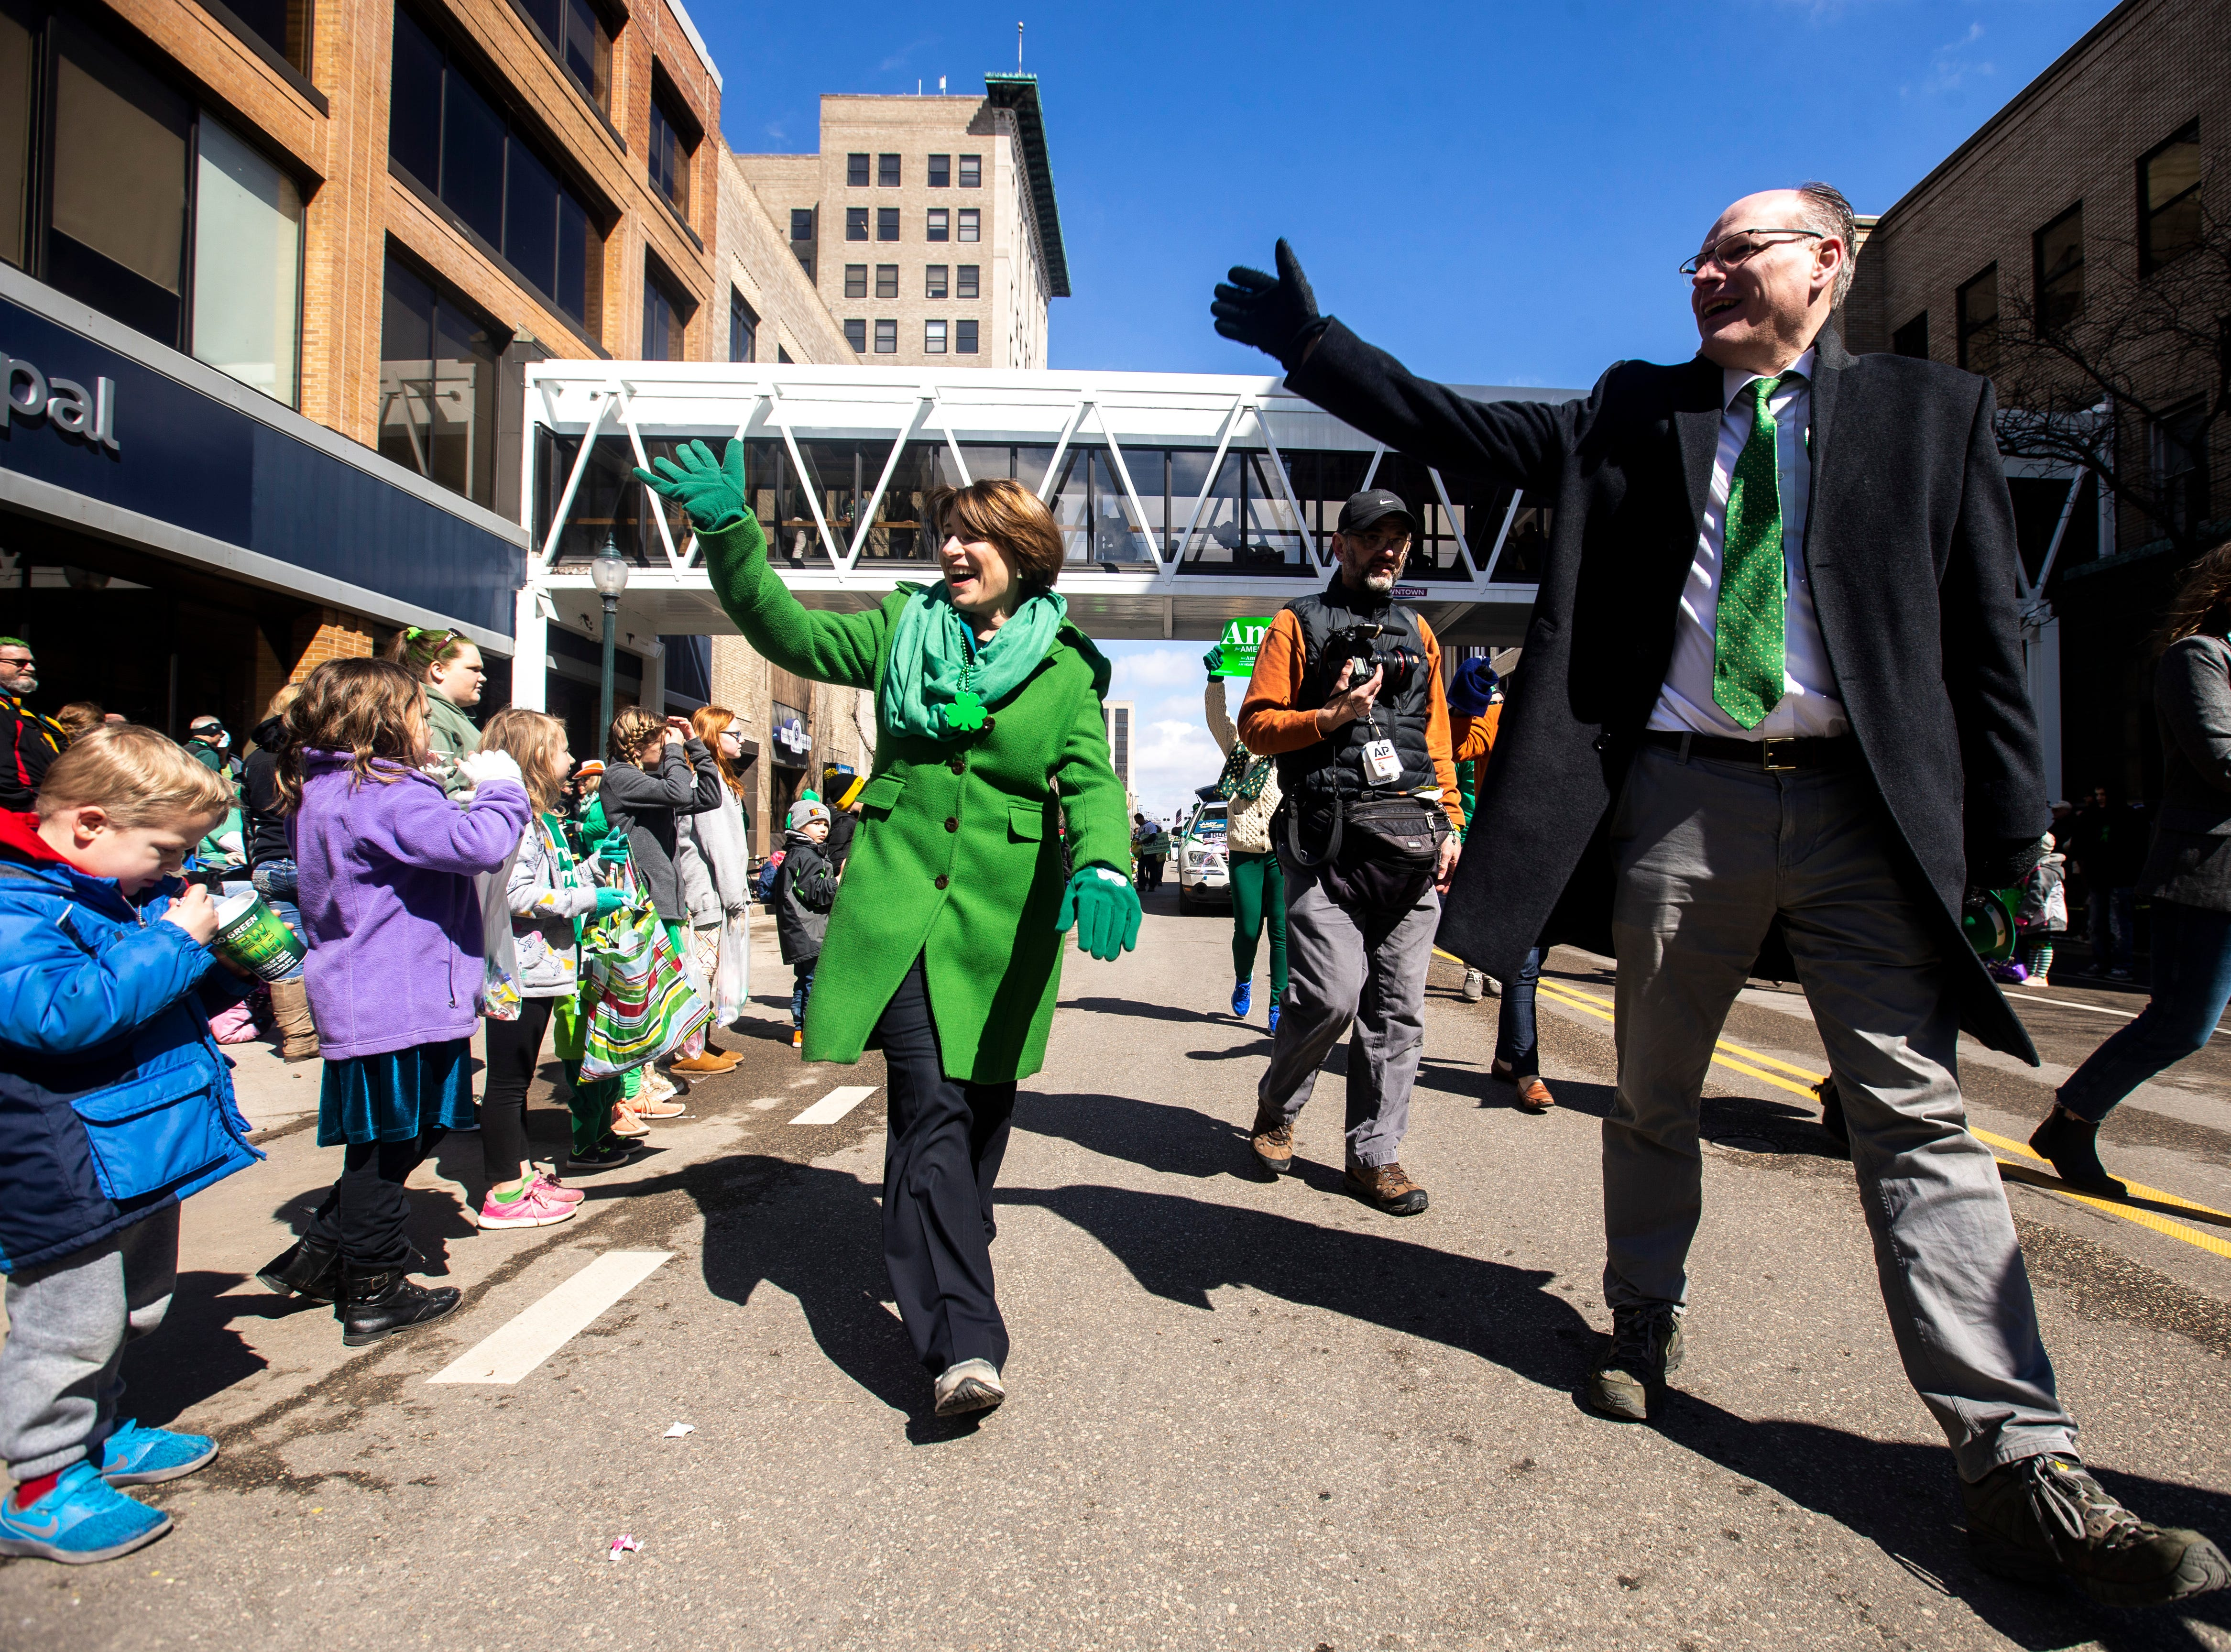 U.S. Sen. Amy Klobuchar, D-Minn., waves to people while walking with her husband John Bessler, right, in the Saint Patrick's Day Parade Society (SaPaDaPaSo) parade on Sunday, March 17, 2019, in downtown Cedar Rapids, Iowa.